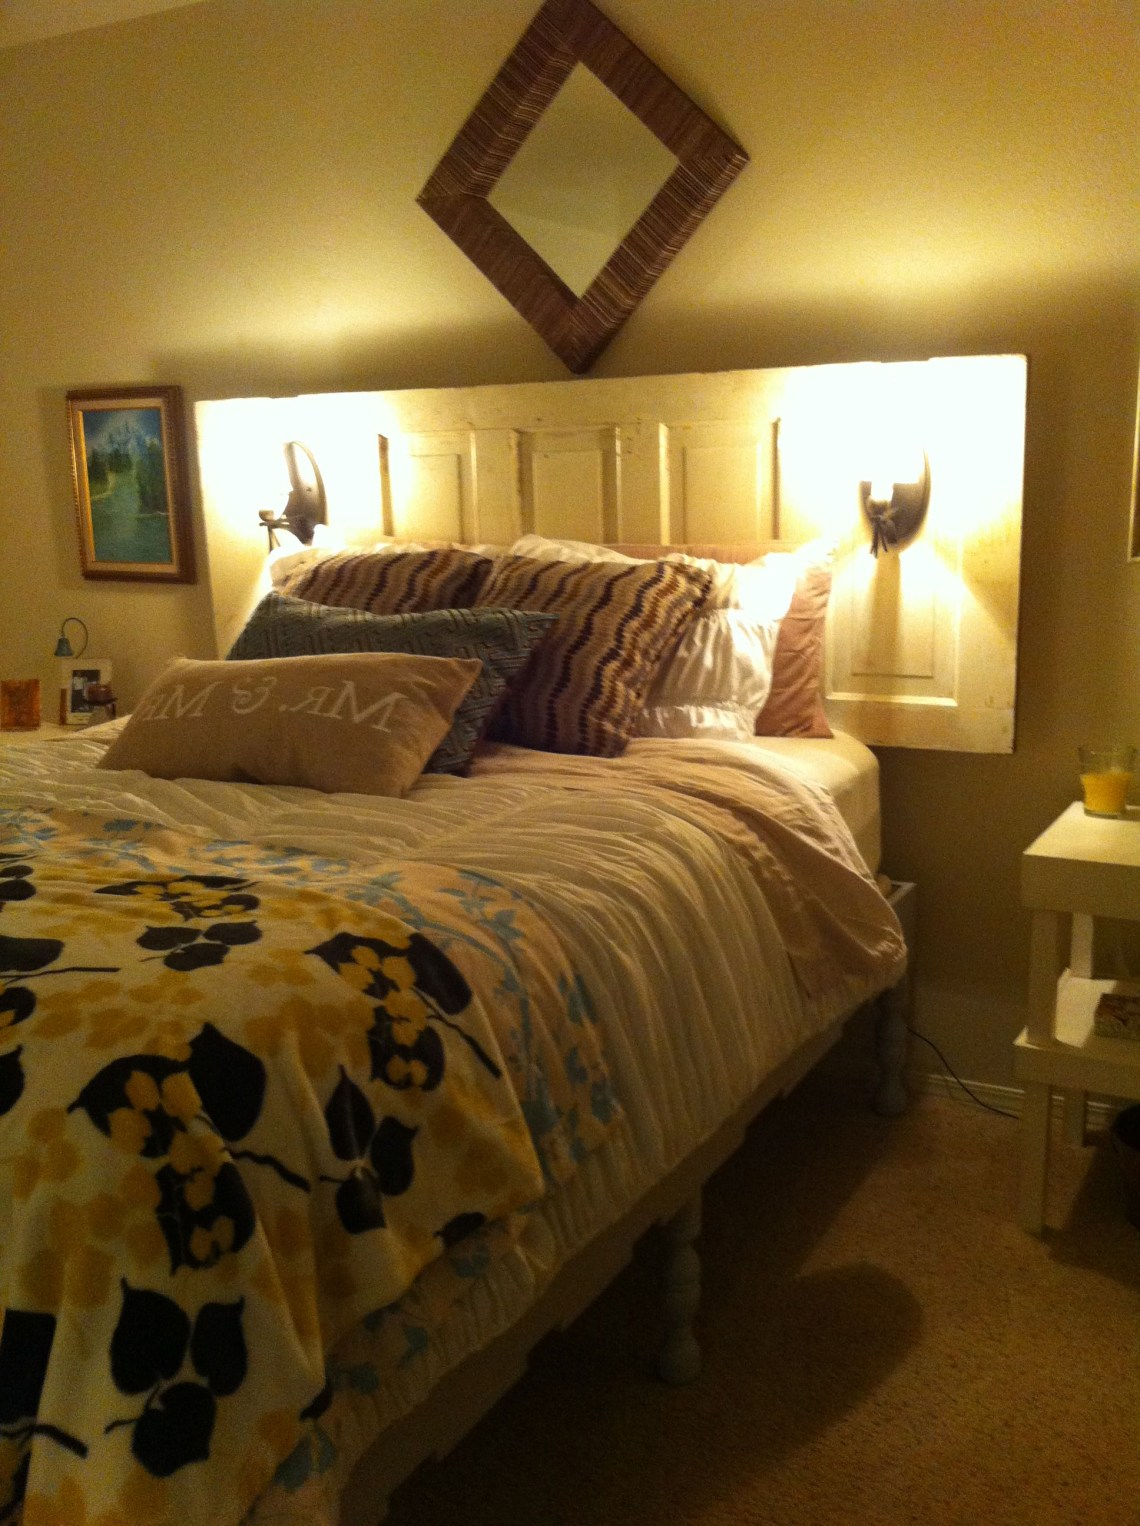 Unique Headboard And Bed Unique Headboards Home Decor